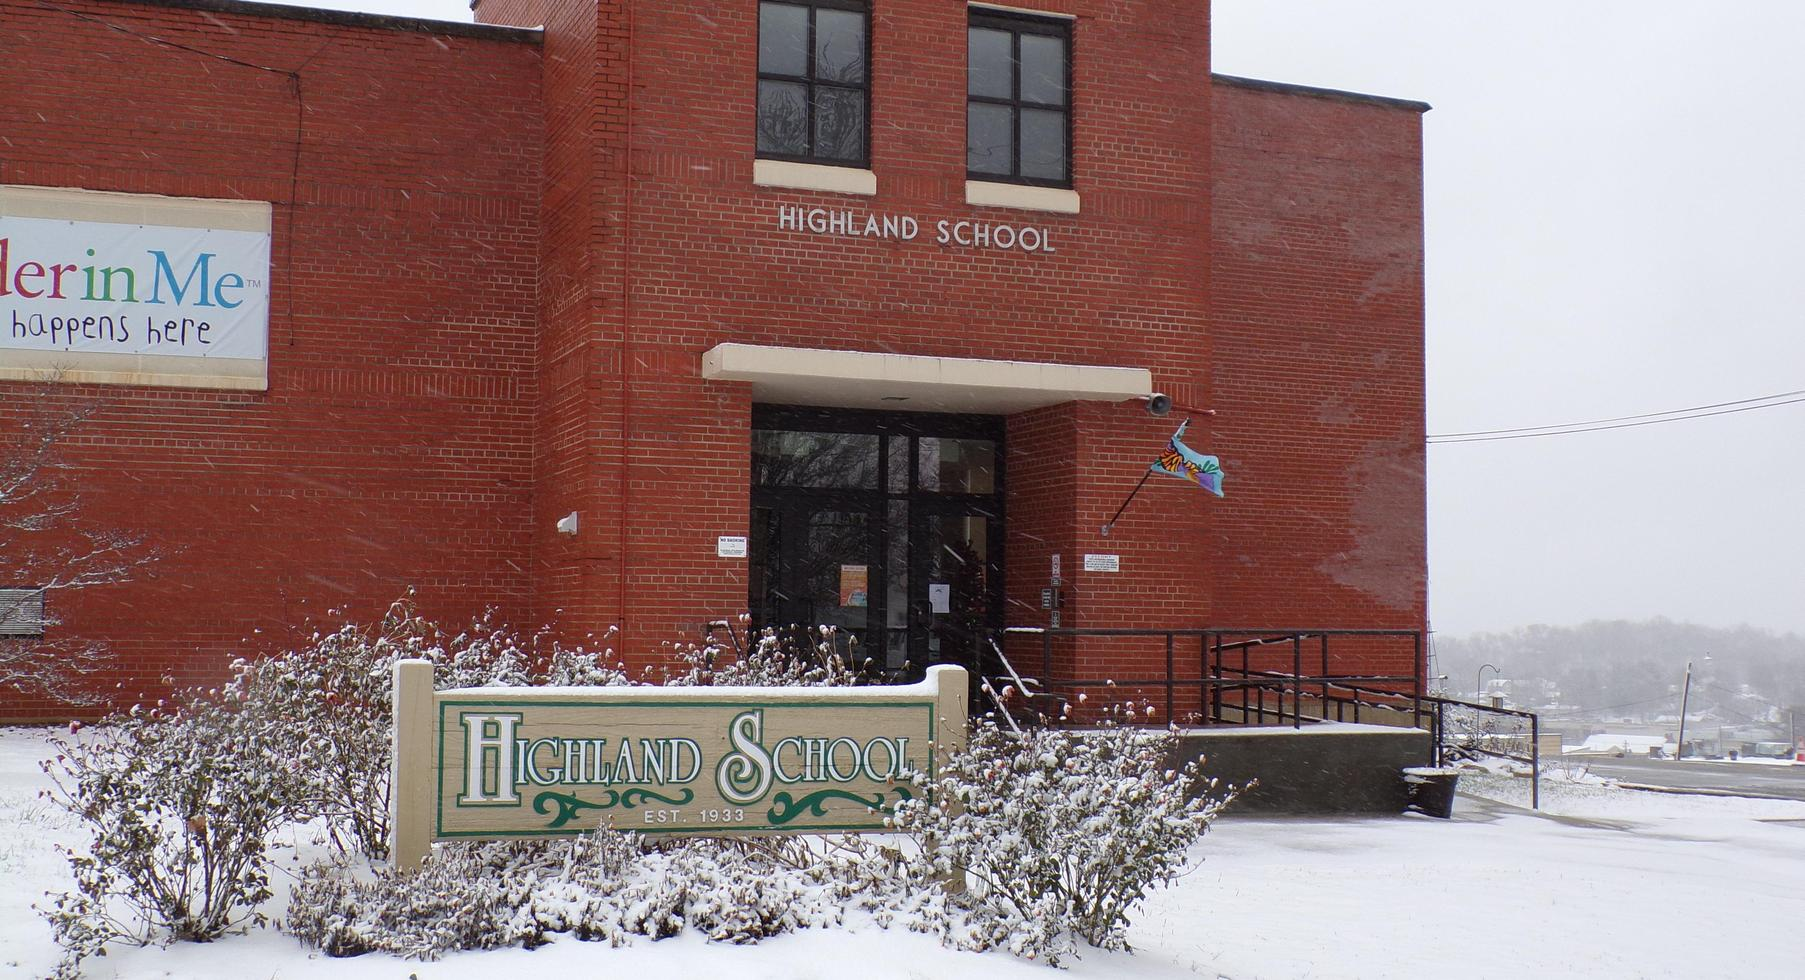 Highland in the snow!